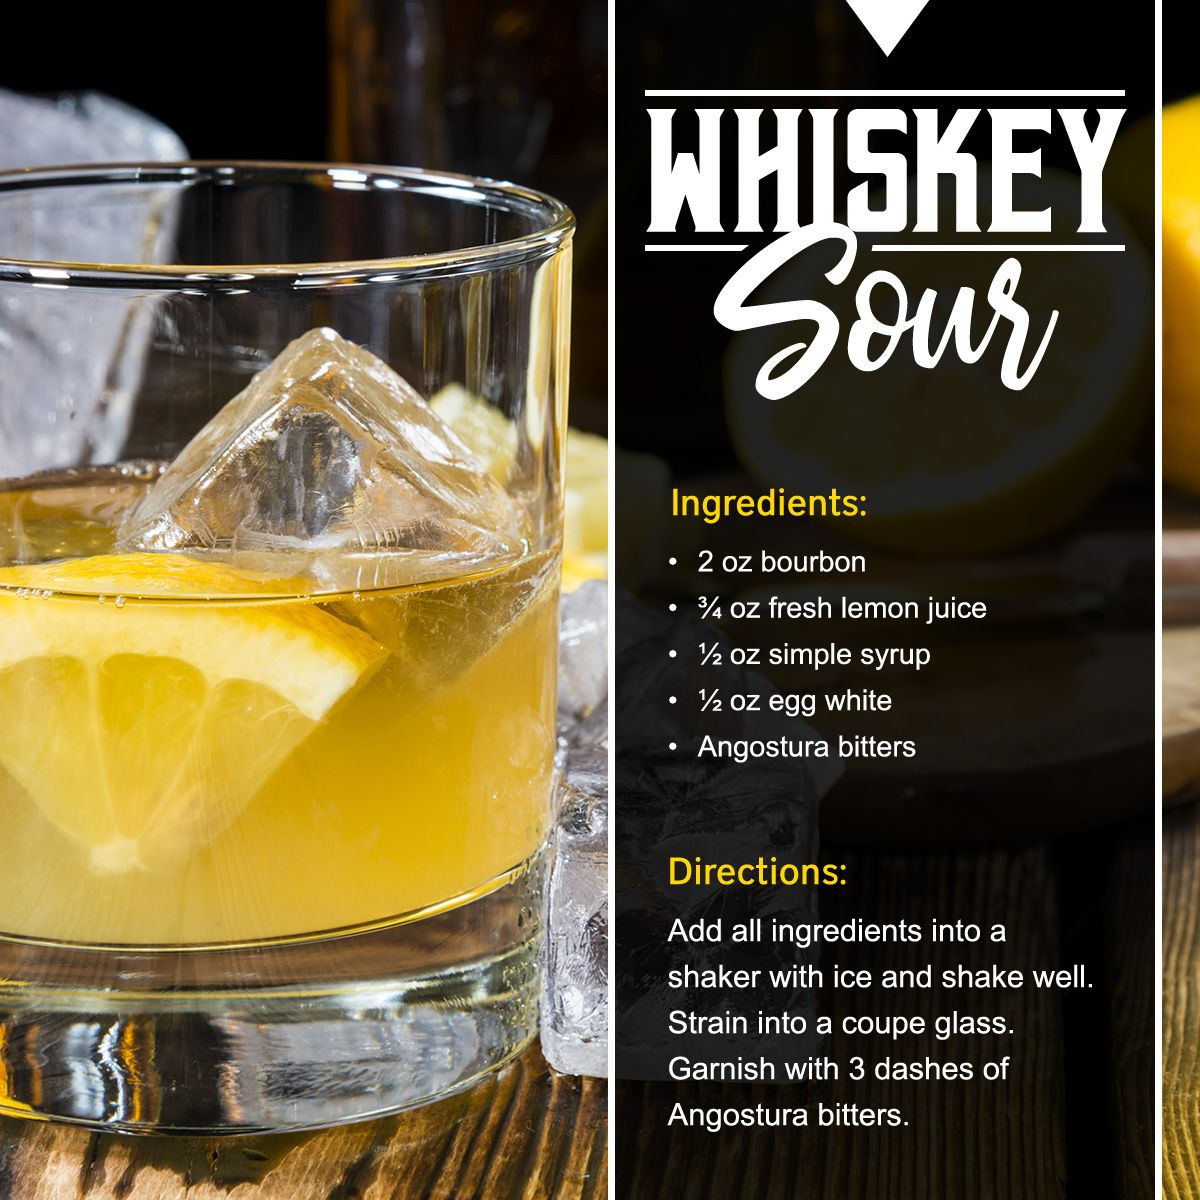 Celebrate nationalwhiskeysourday with this classic recipe